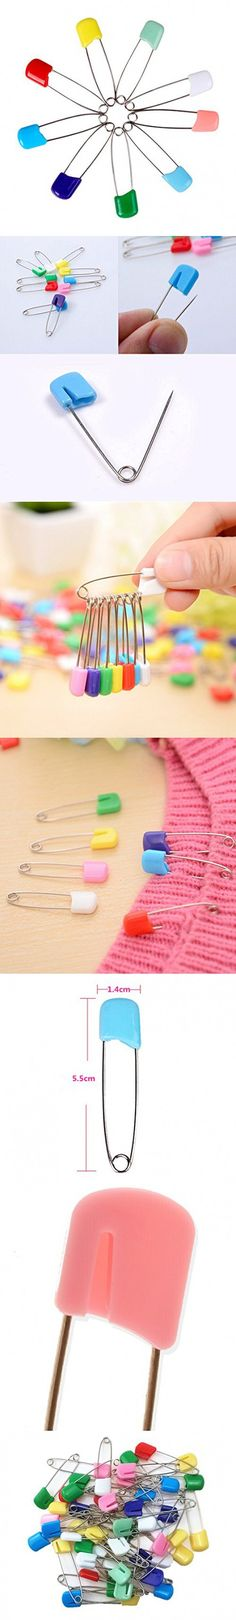 Yueton Pack of 50 Assorted Color Plastic Head Baby Safety Pins Safety Locking Baby Cloth Diaper Nappy Pins (Square)